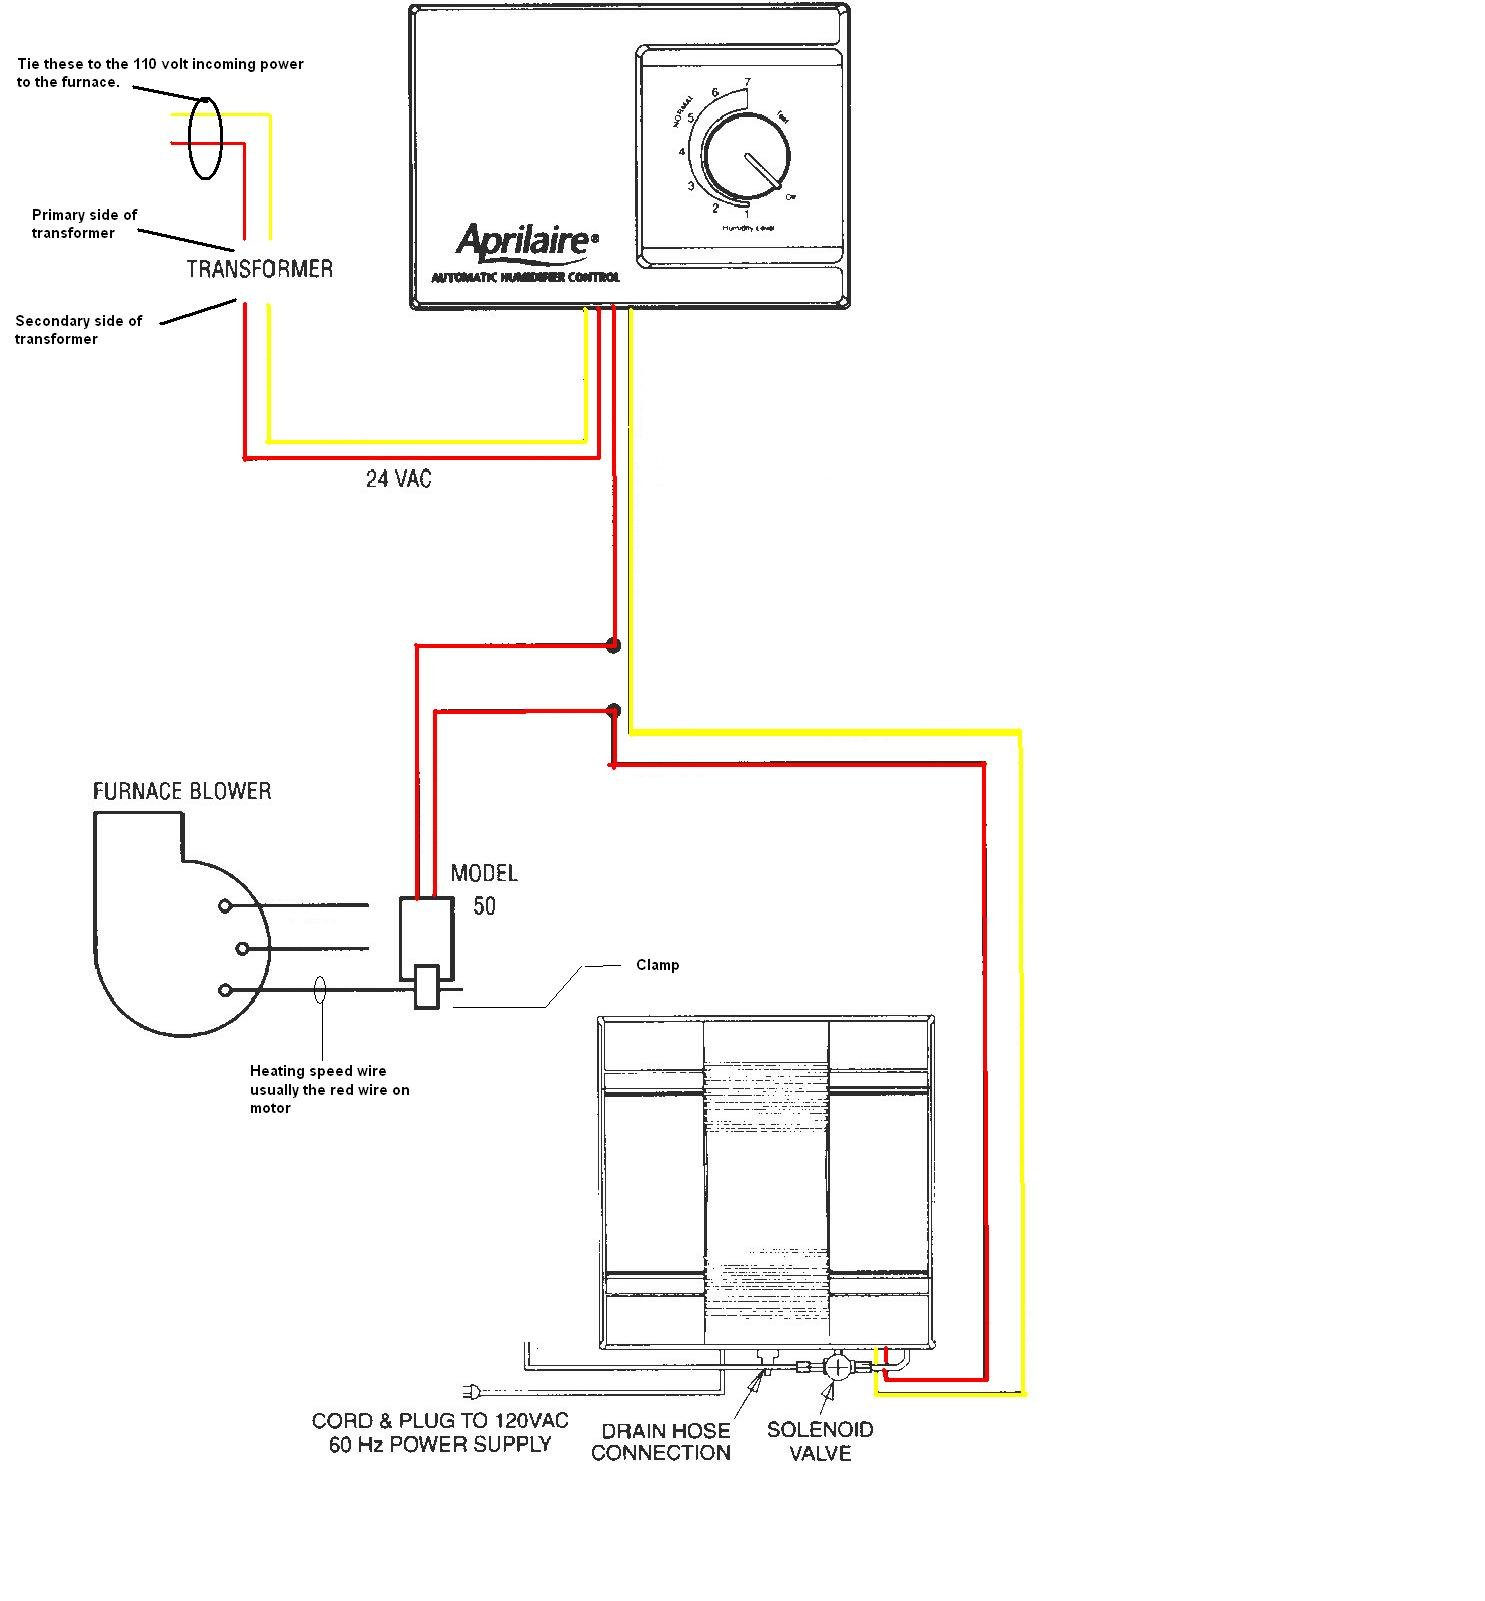 Help With Wiring He220 Humidifier To Furnace Manual Guide